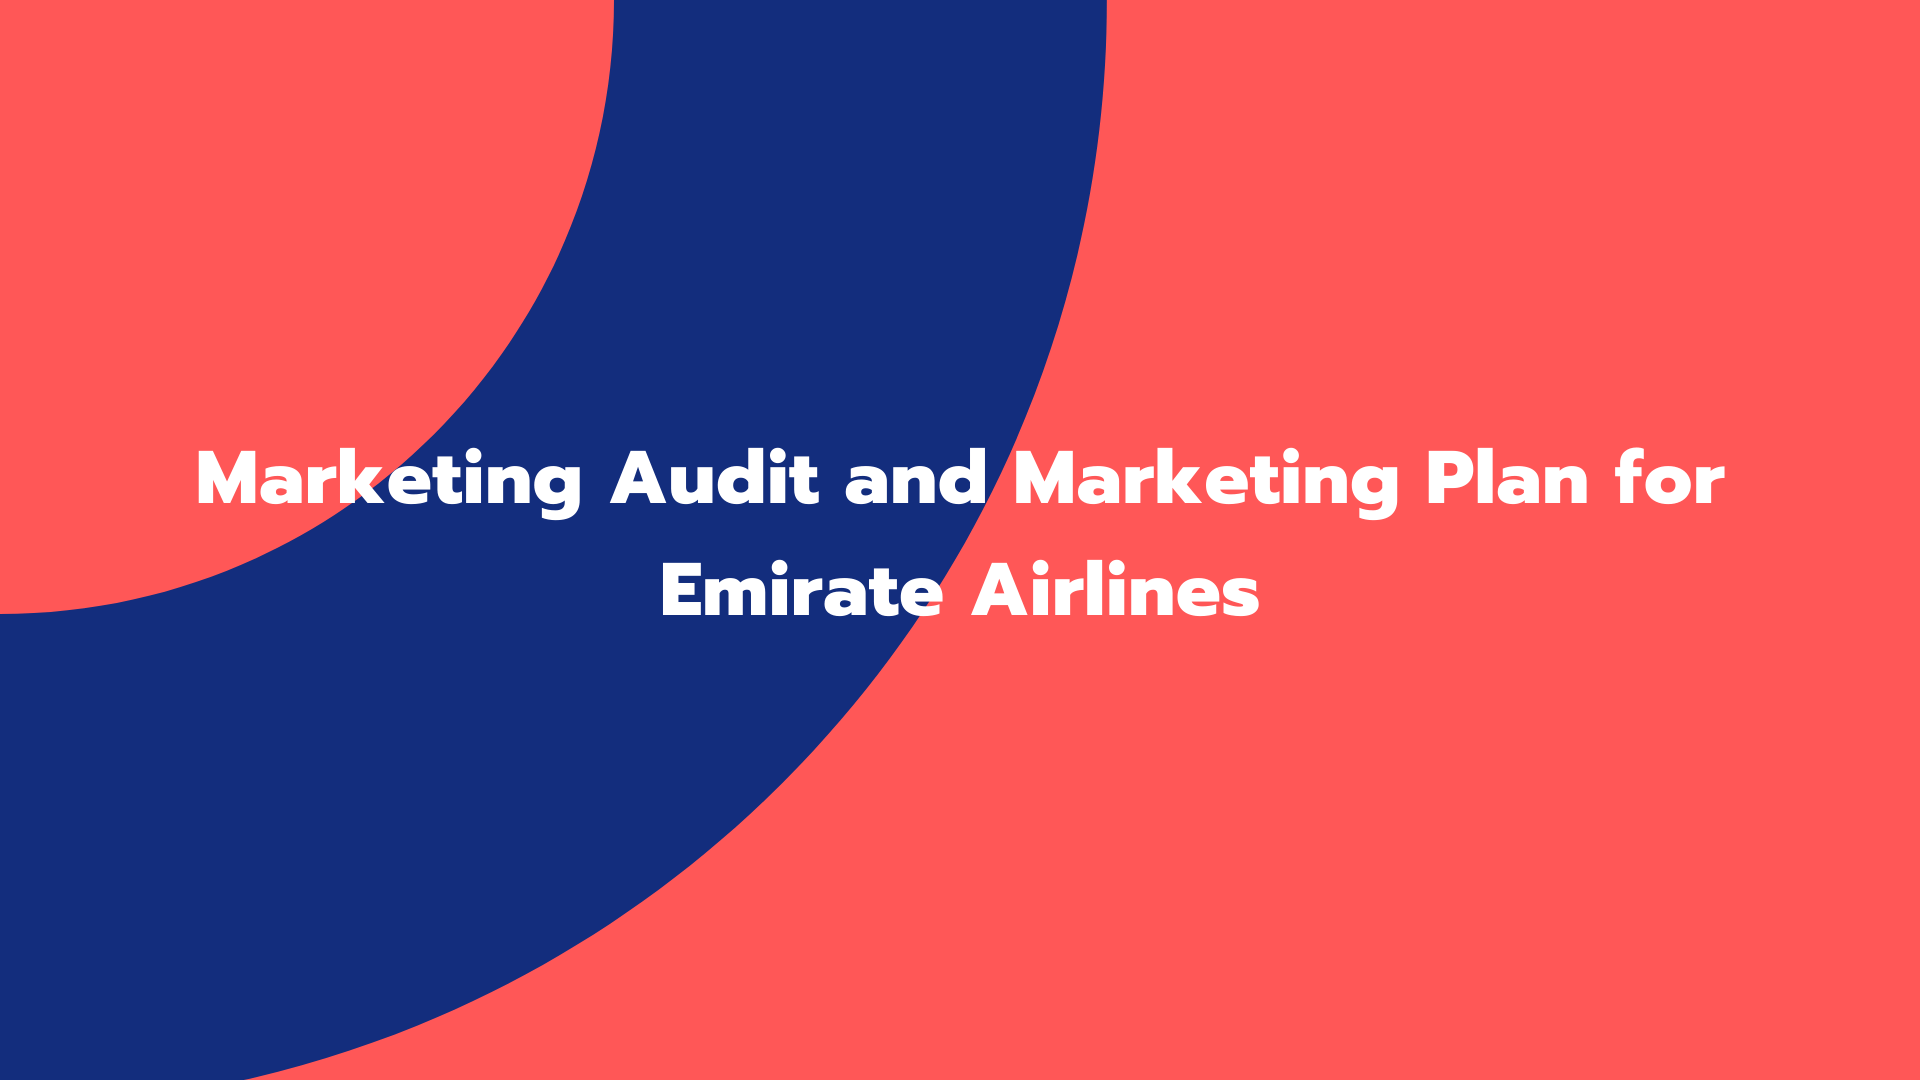 Marketing Audit and Marketing Plan for Emirate Airlines